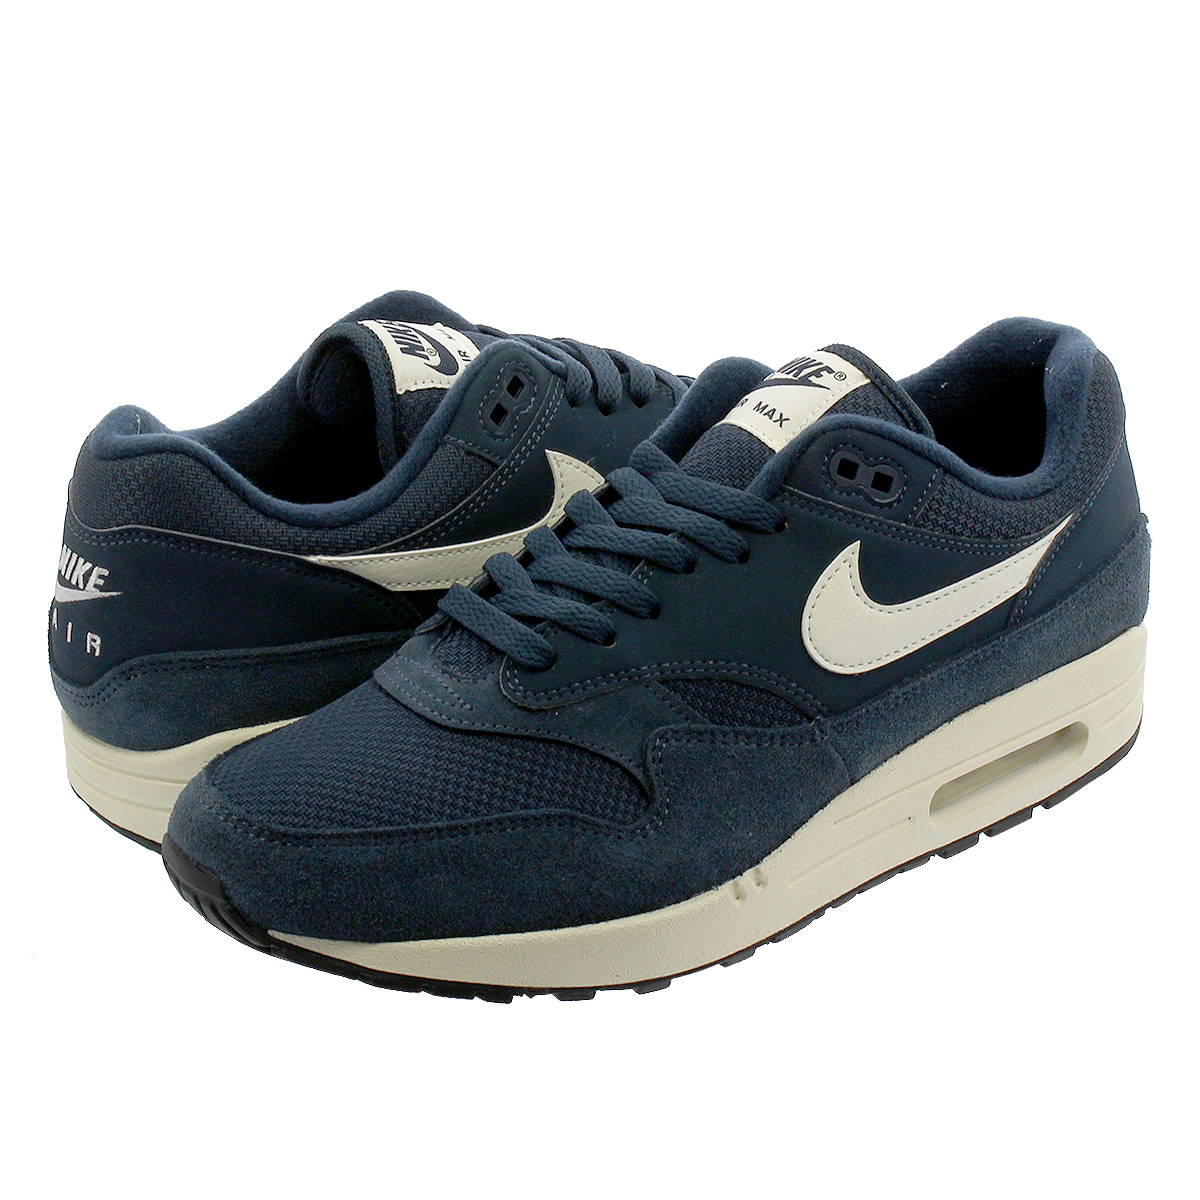 cheap for discount c1445 92340 NIKE AIR MAX 1 Kie Ney AMAX 1 ARMORY NAVY SAIL SAIL BLACK ...